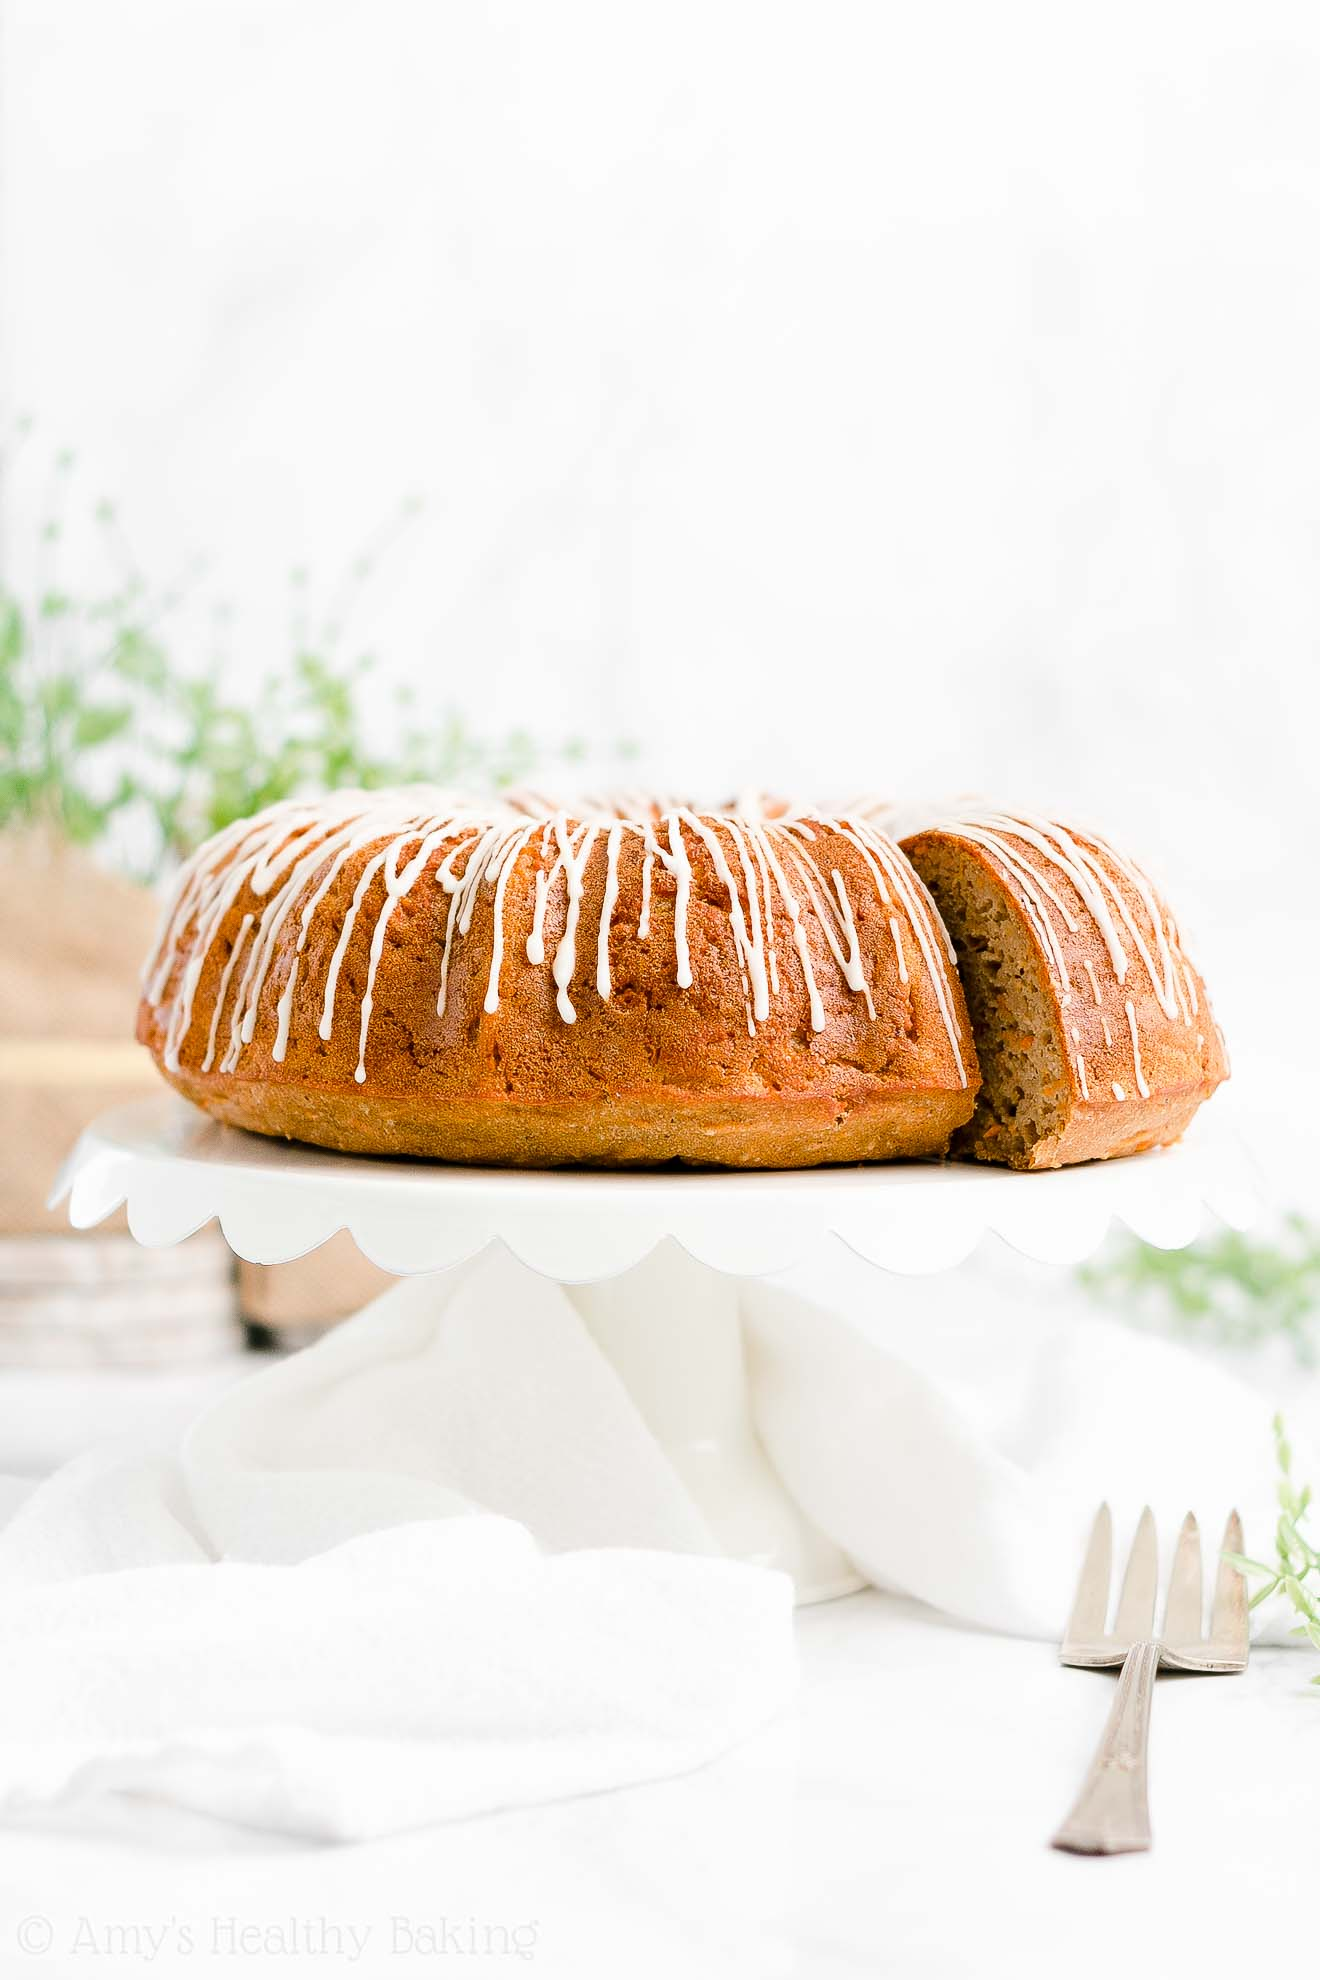 Best Easy Healthy Whole Wheat Low Fat Super Moist Carrot Bundt Cake